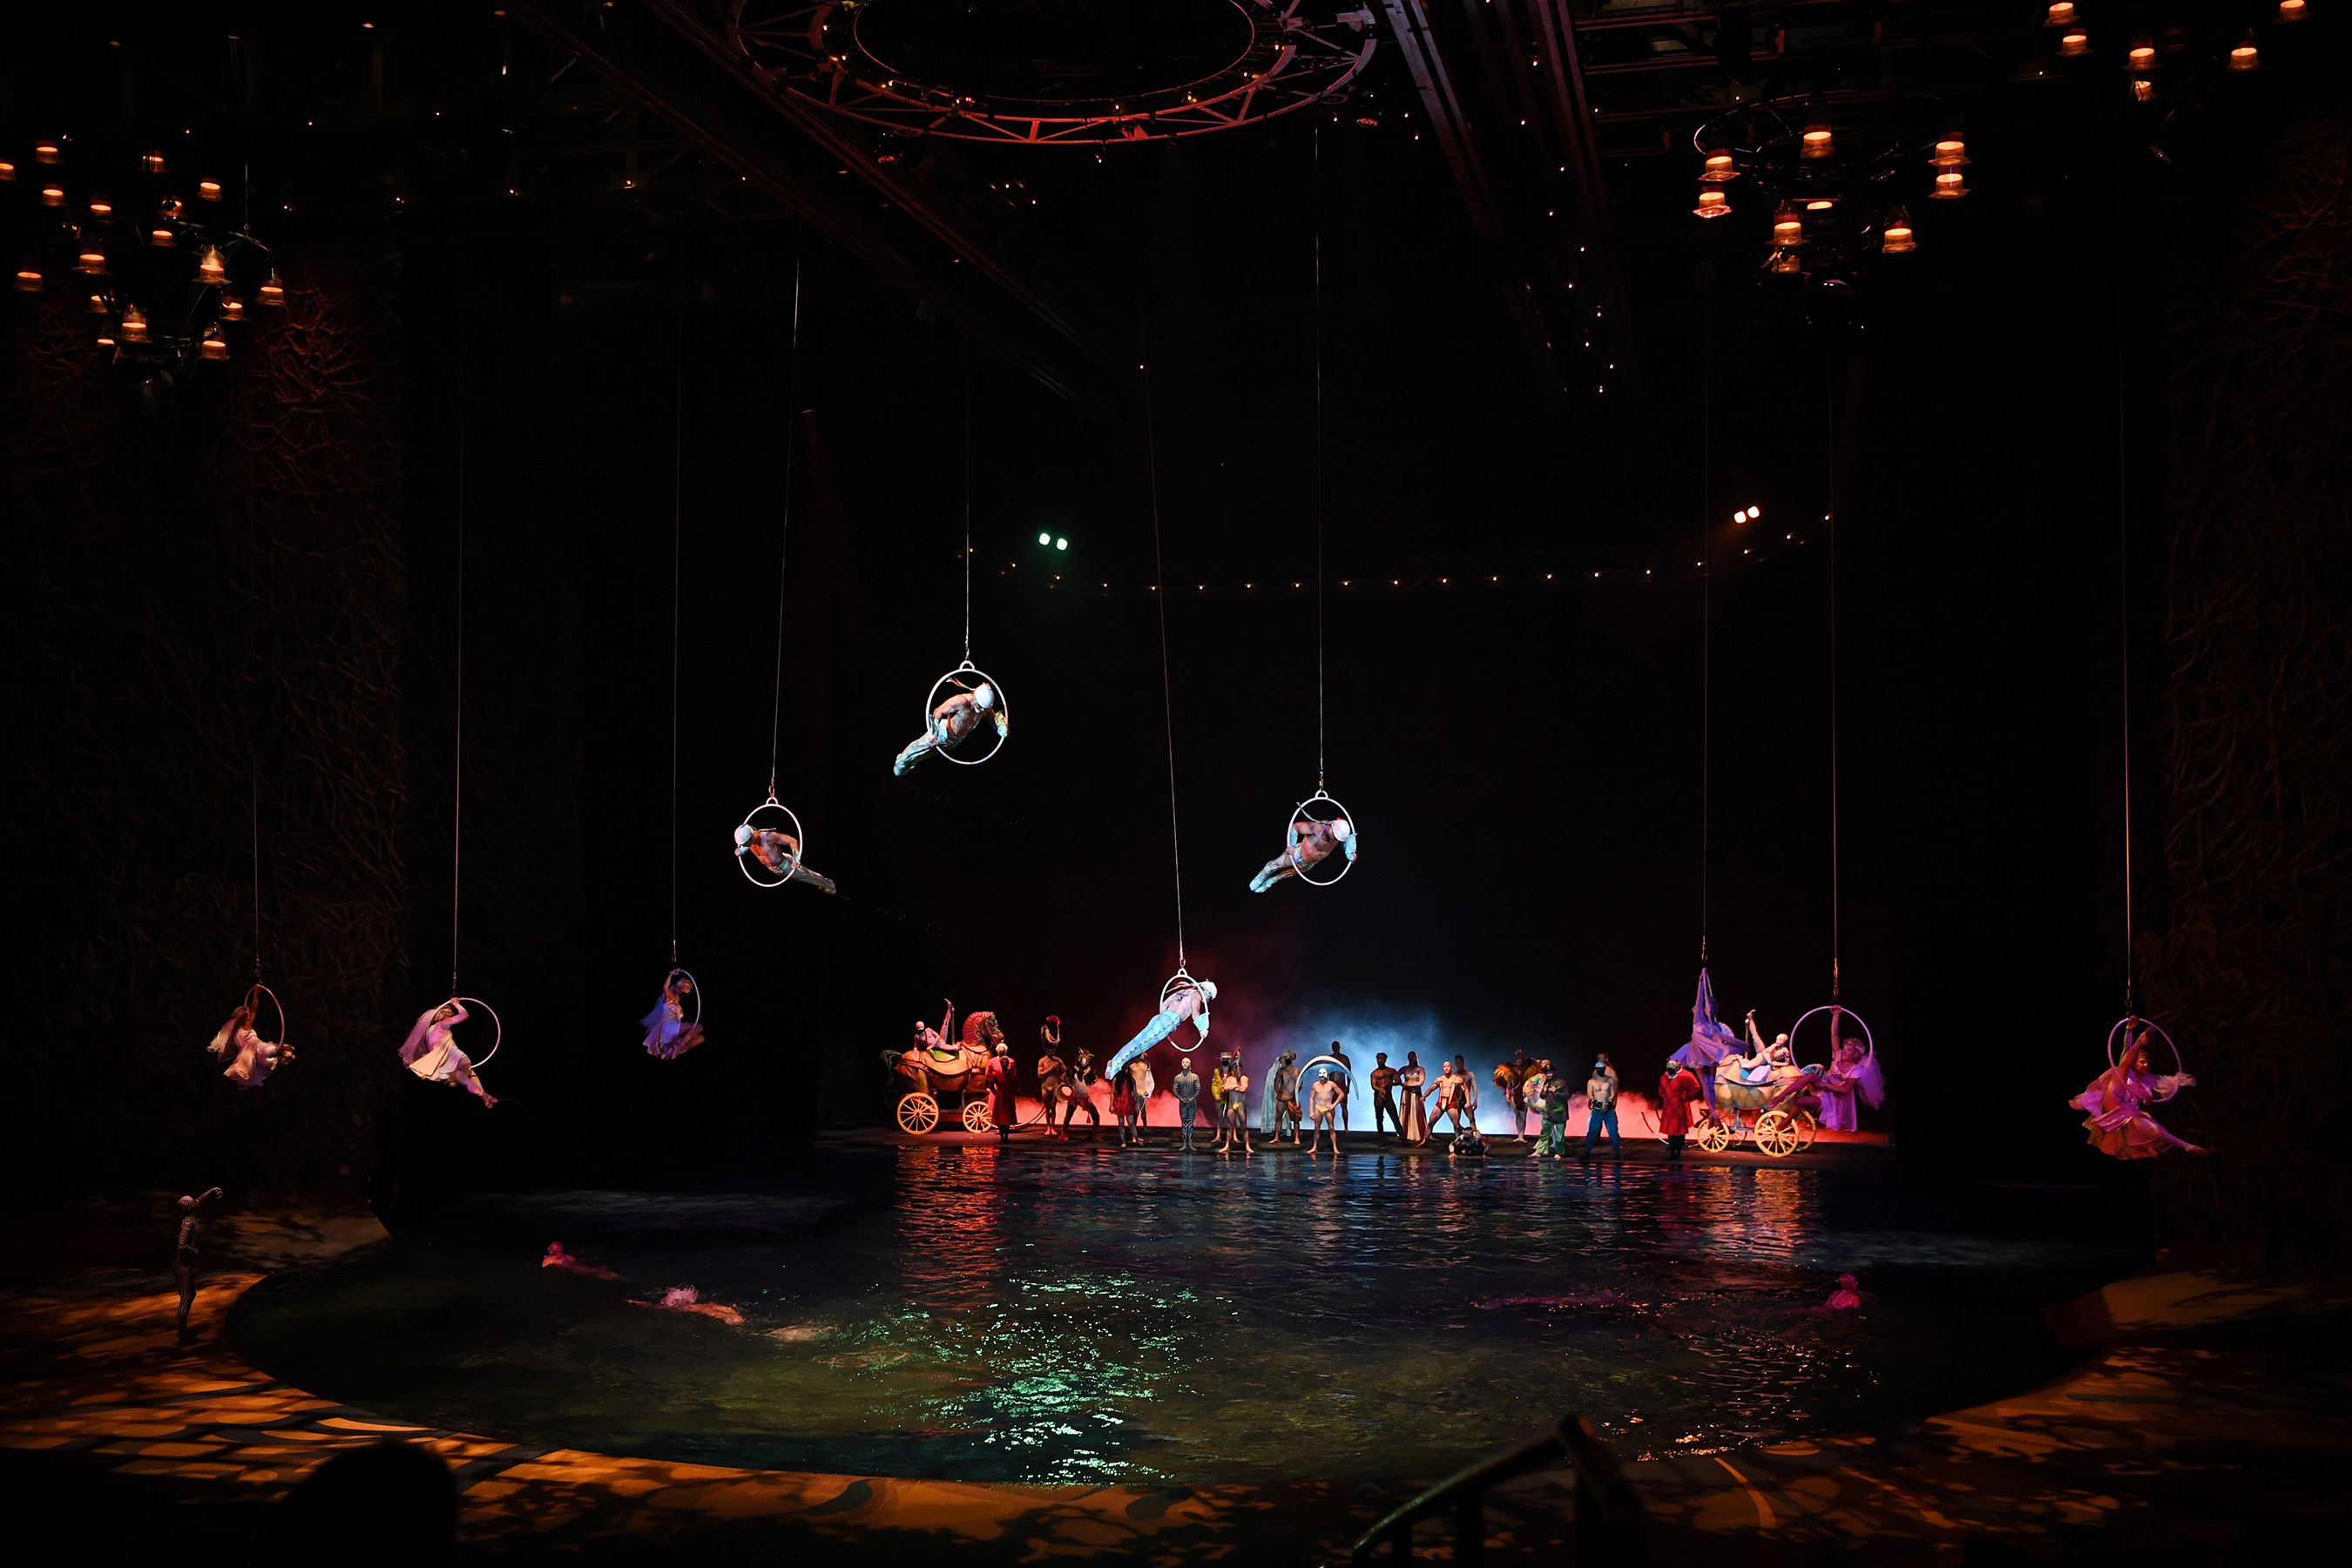 """""""O"""" by Cirque du Soleil, which has been enjoyed by more than 17 million people, celebrates its first performance in 16 months at Bellagio before a sold-out crowd on July 1, 2021"""